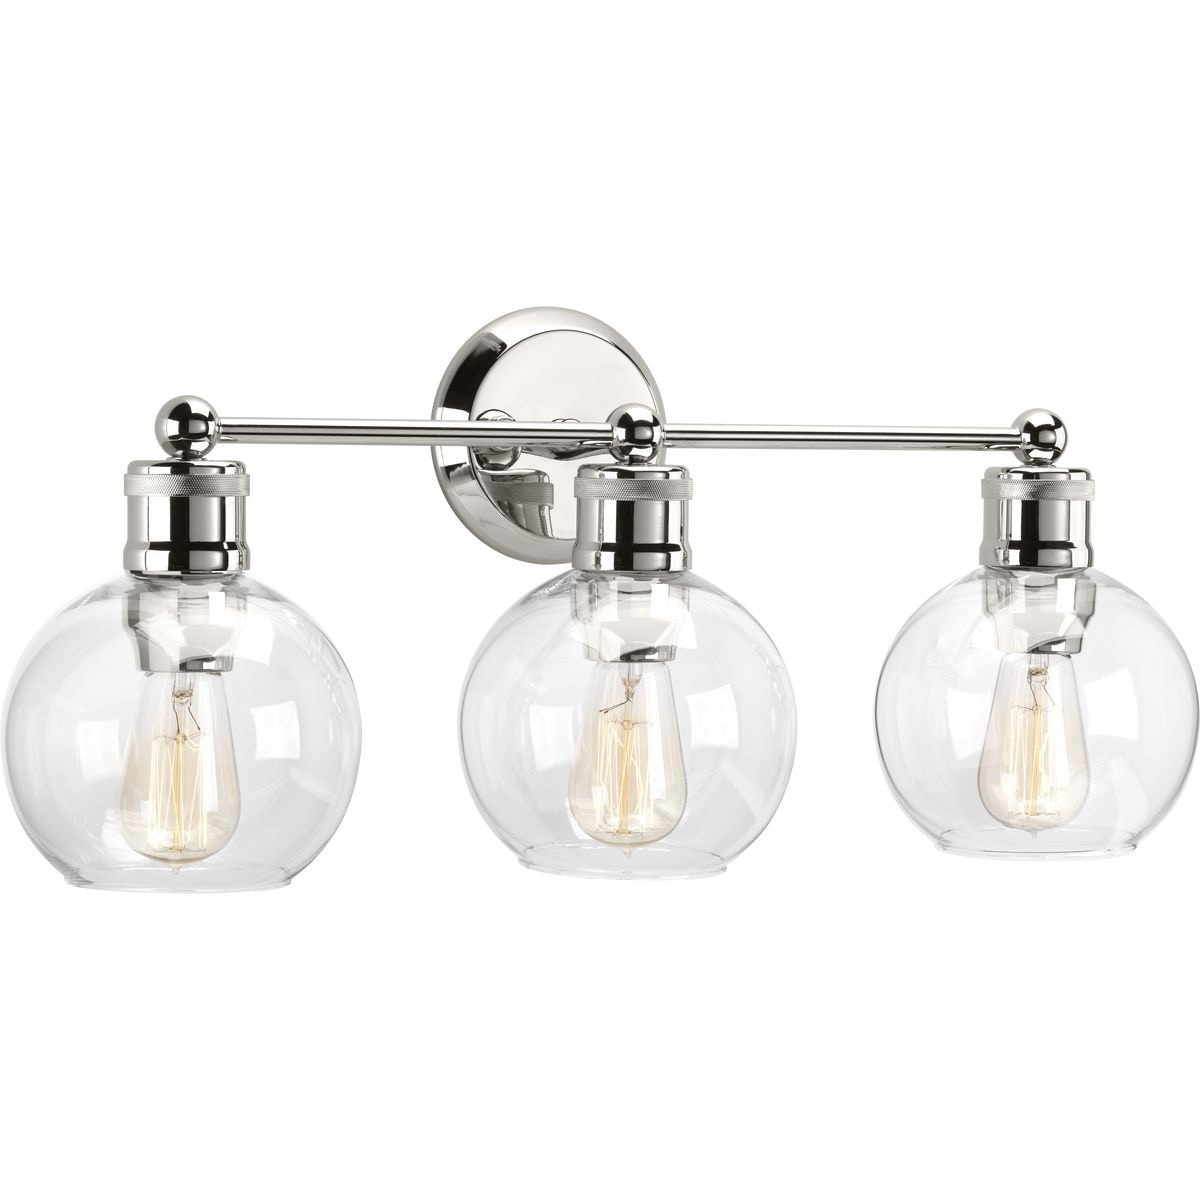 Carbon Loft Guillotin 3 Light Polished Nickel Bath N A